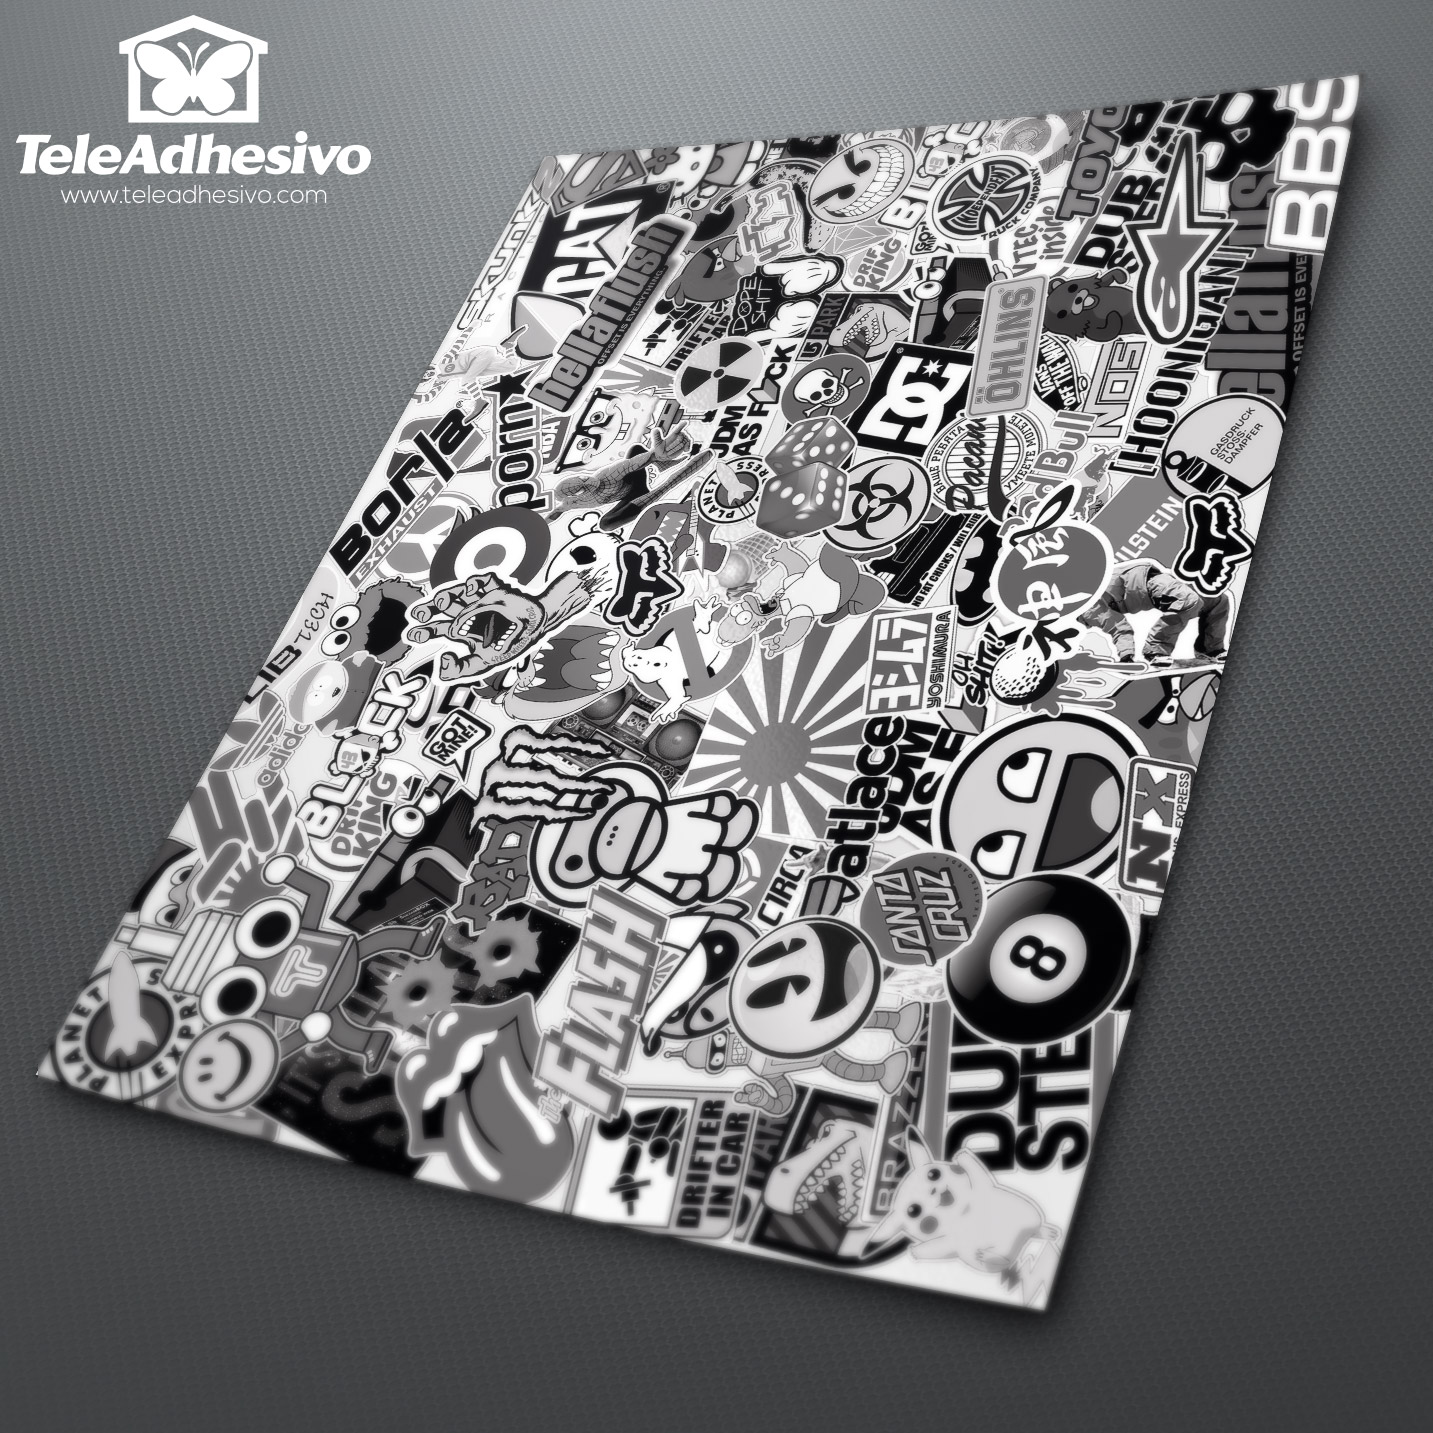 Stickerbomb Noir Et Blanc Webstickersmuraux Com